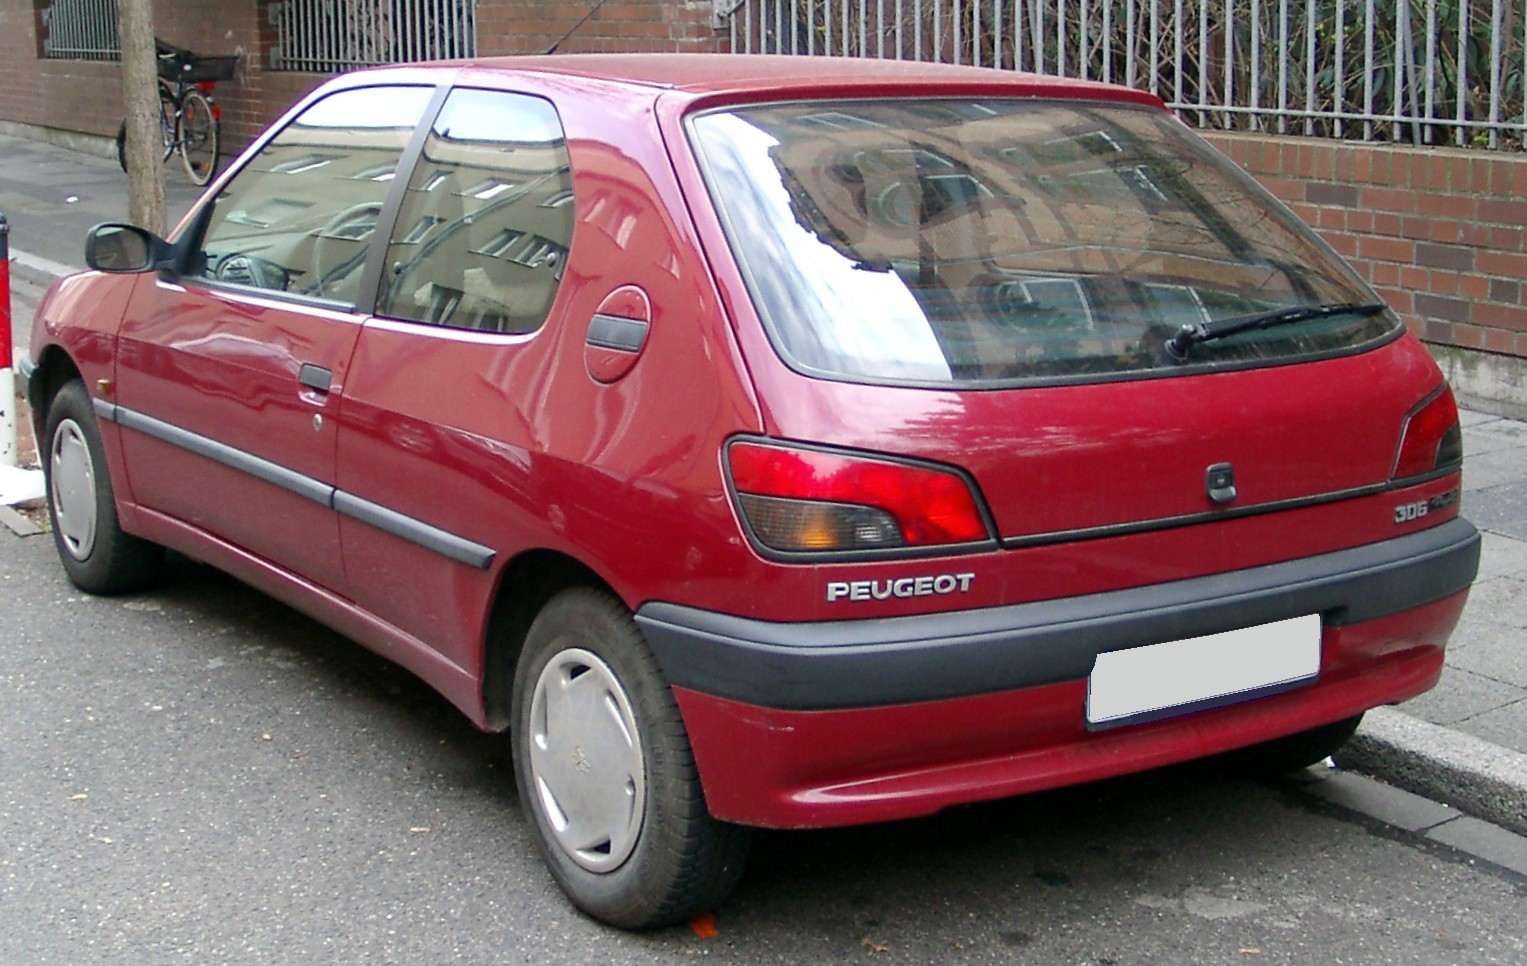 Peugeot 306 Owners Club & Forum